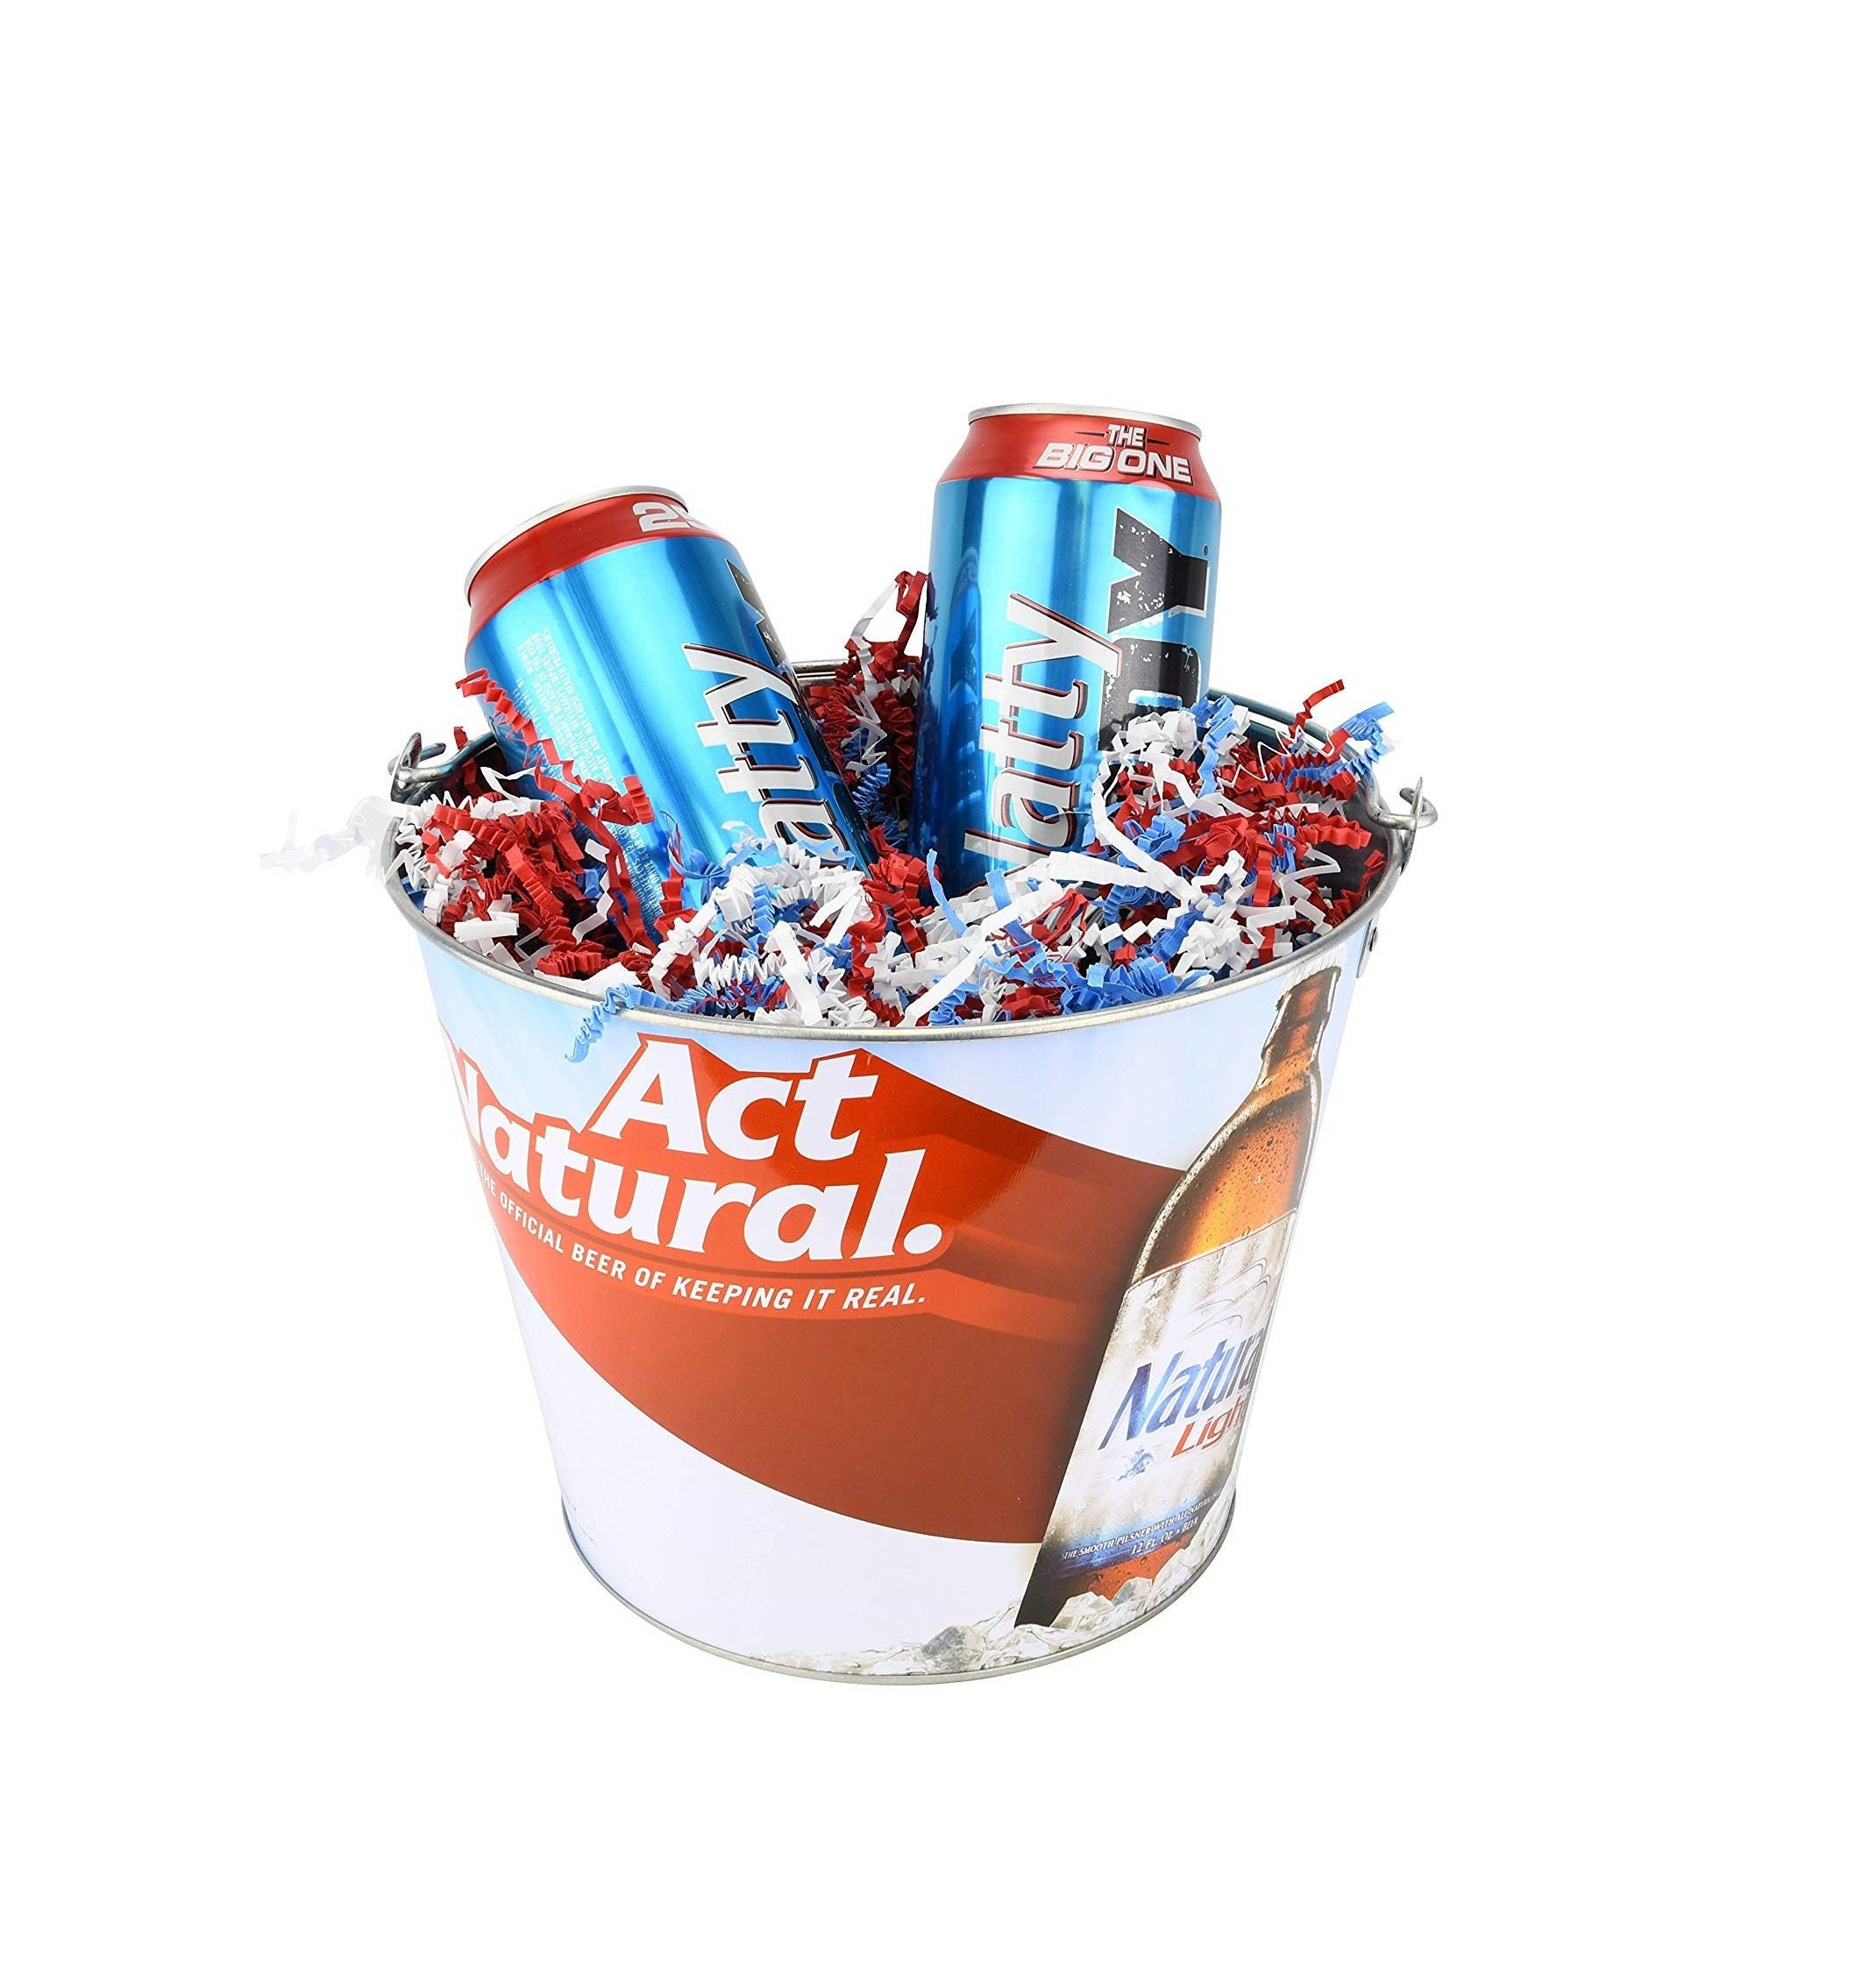 Bud Light Beer Bucket Adult Easter Basket//Gift Baskets with Colored Easter Grass